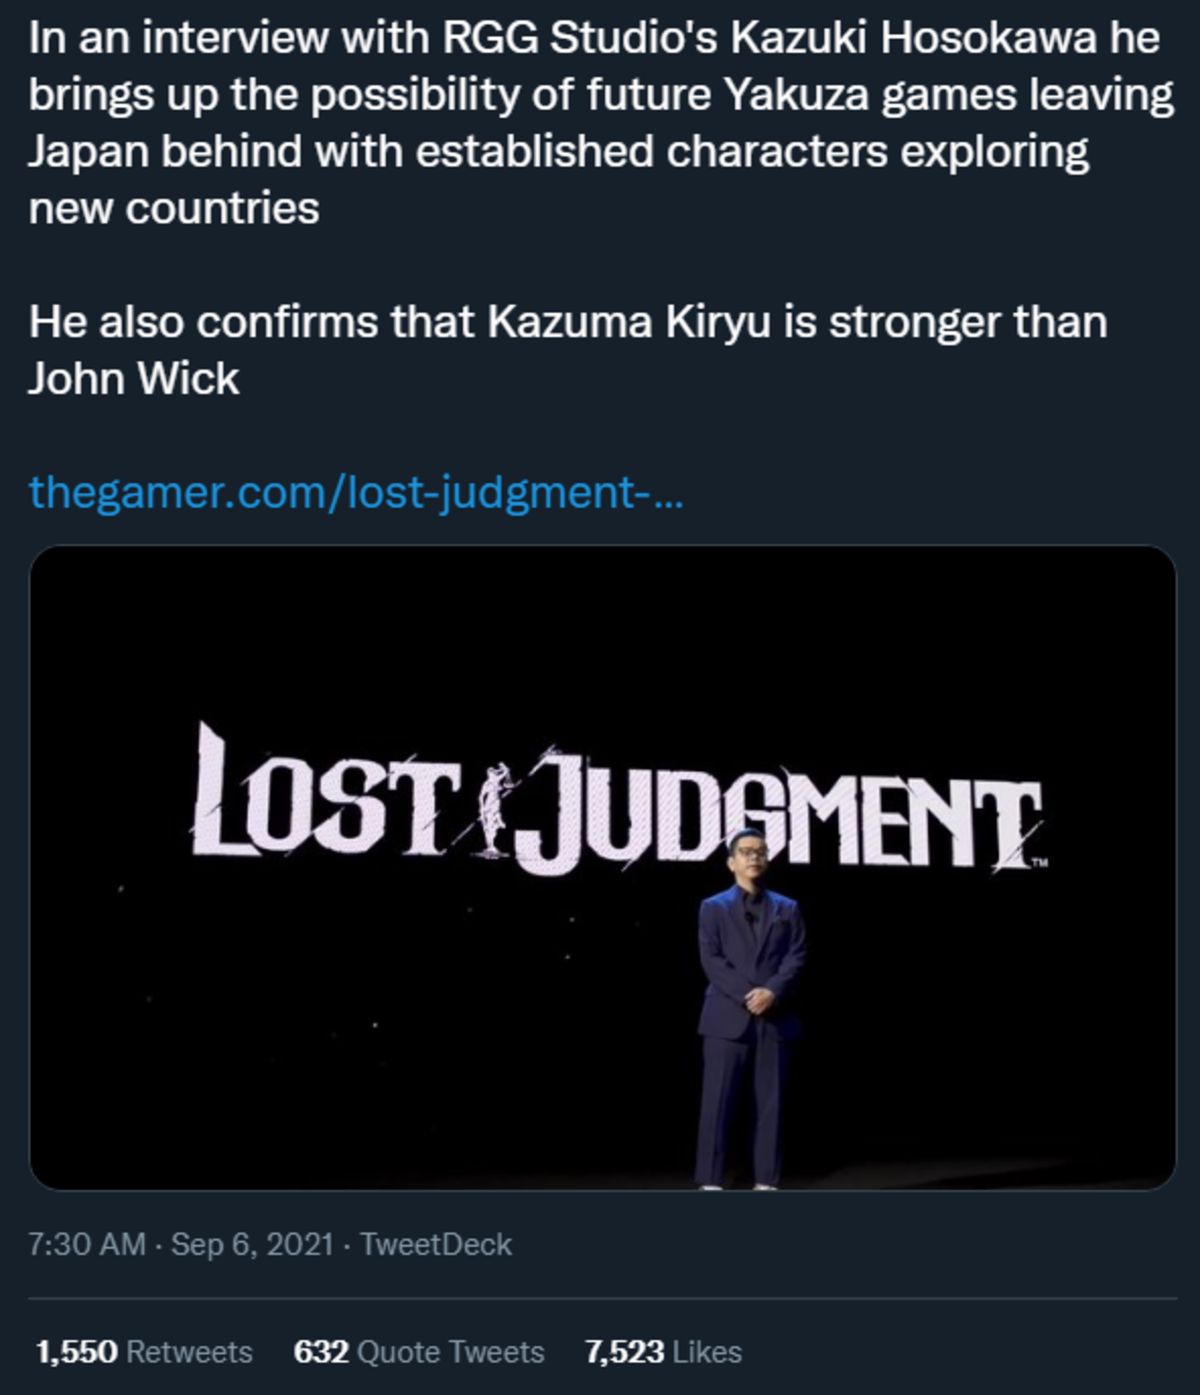 But what if Kiryu hurt John Wick's dog?. .. Unfair comparison really, John wick isn't a strong powerhouse type guy. Kiryu literally punches tigers in the sidequests of his games. An argument of fisticuffs